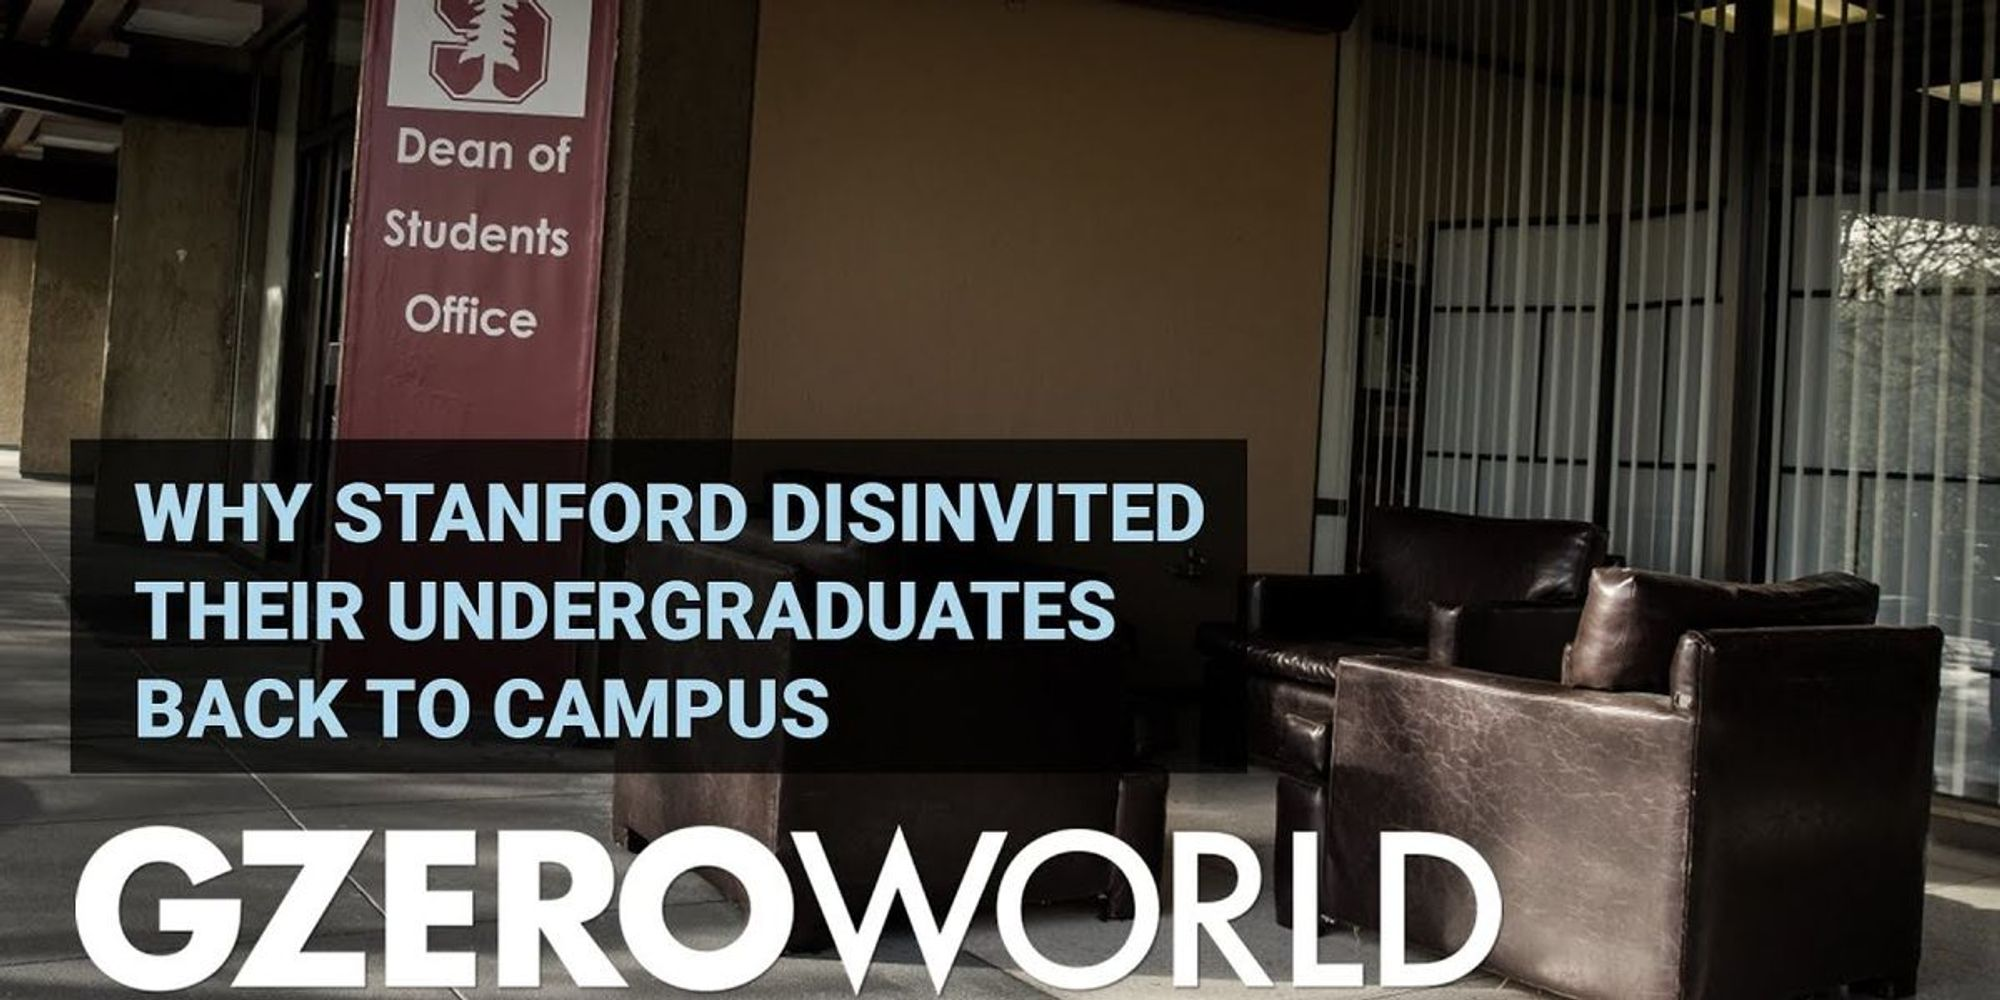 Why Stanford disinvited their undergraduates back to campus